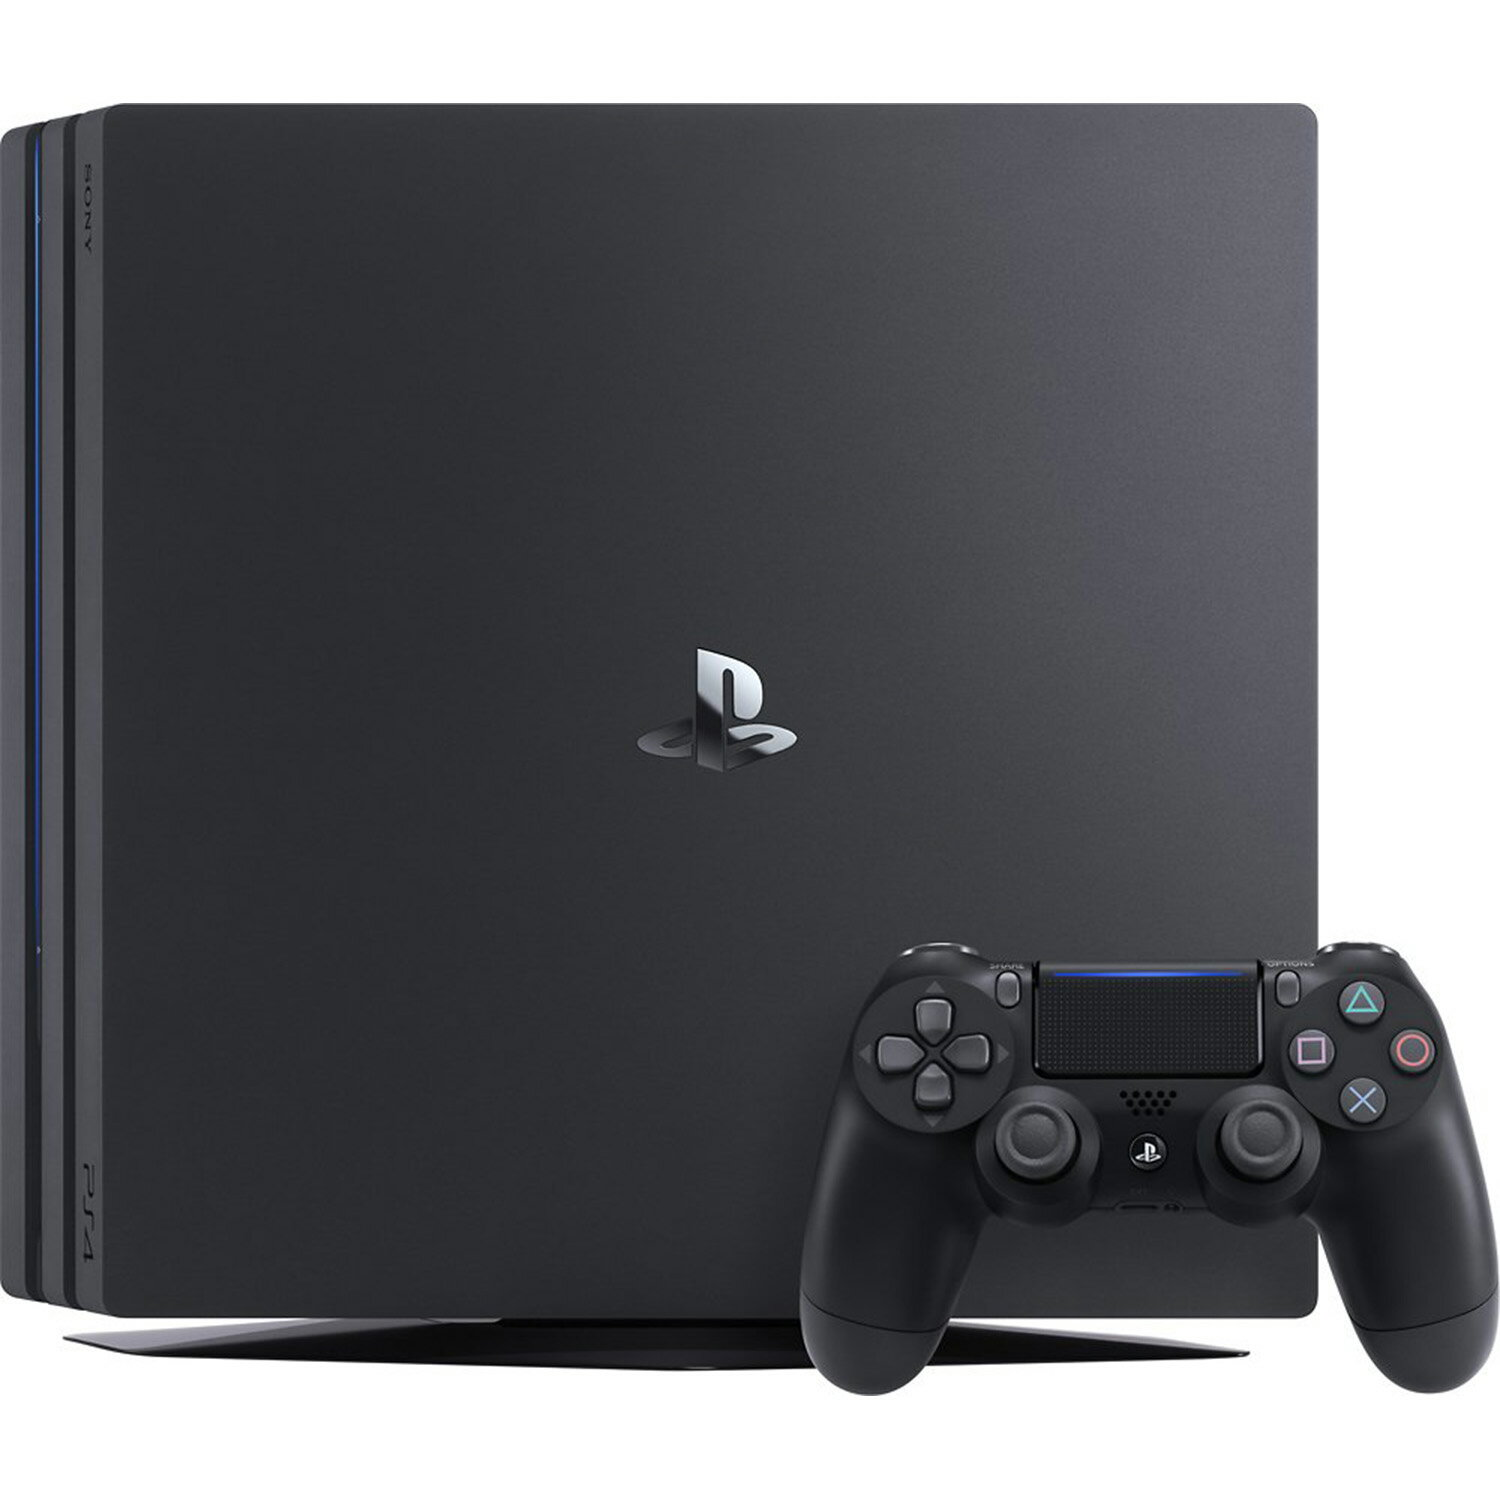 Sony Playstation 4 Pro 1TB Gaming Console & Dualshock 4 Controller and  Headset (CUH-7215B)